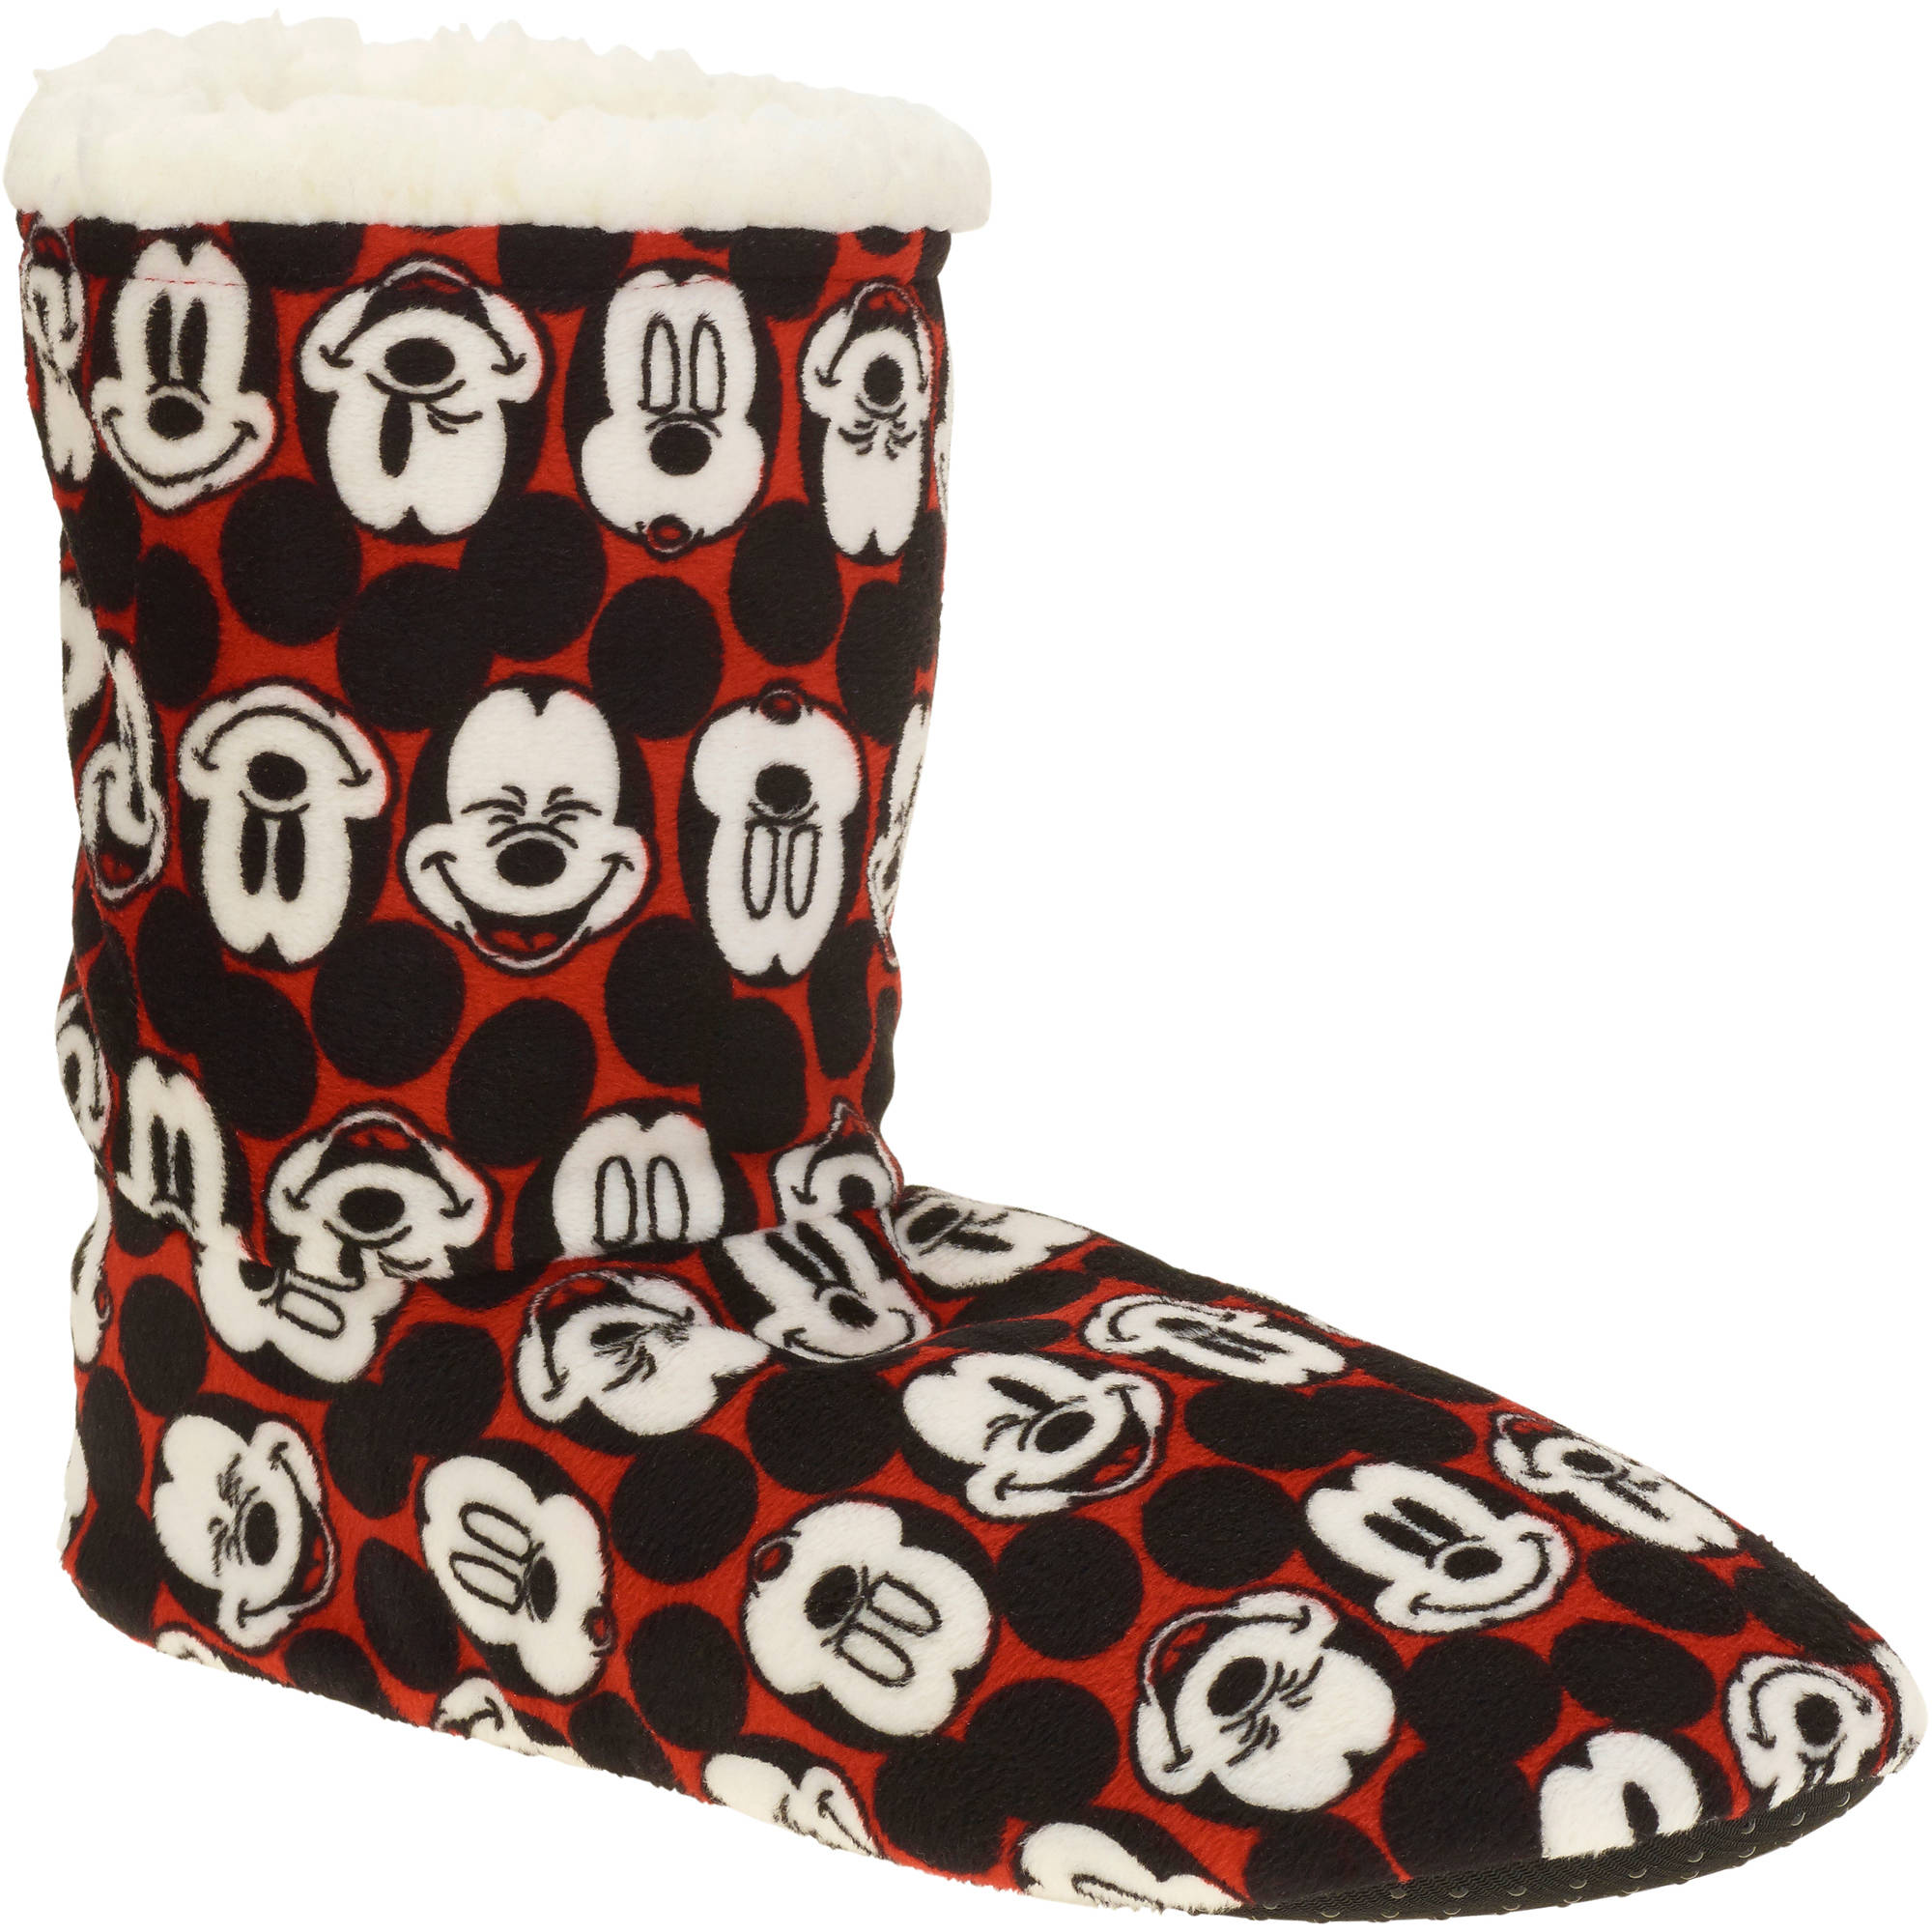 Silky Suede Fuzzy Babba Mickey Mouse Printed Bootie Slipper Socks